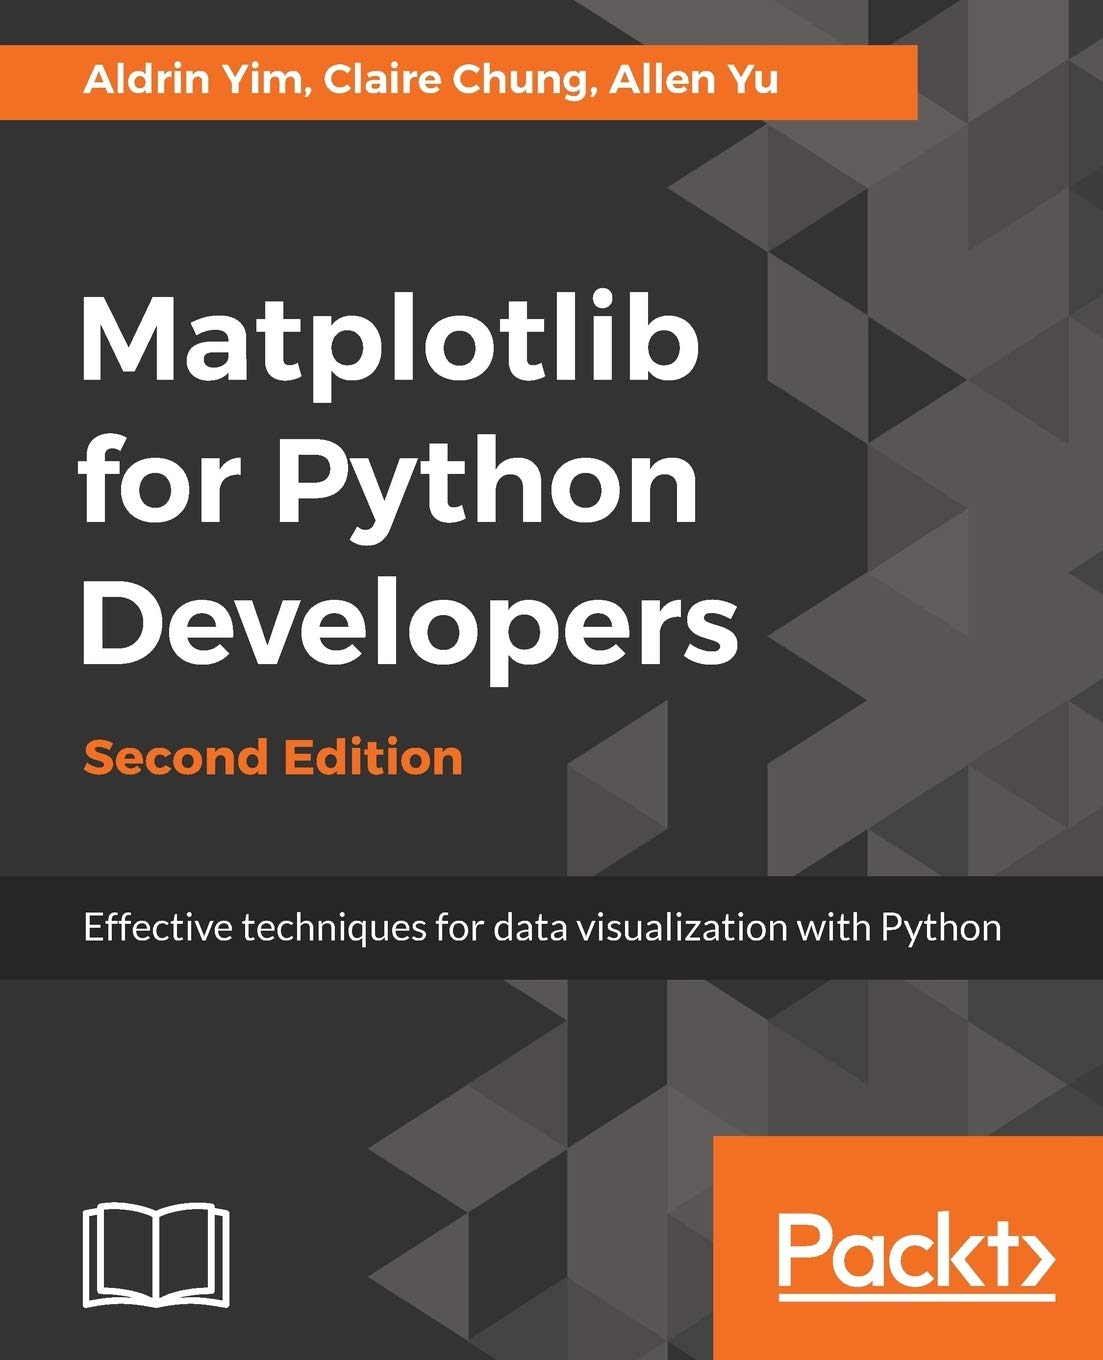 Matplotlib for Python Developers: Effective techniques for data visualization with Python, 2nd Edition: Amazon.es: Yim, Aldrin, Chung, Claire, Yu, Allen: Libros en idiomas extranjeros